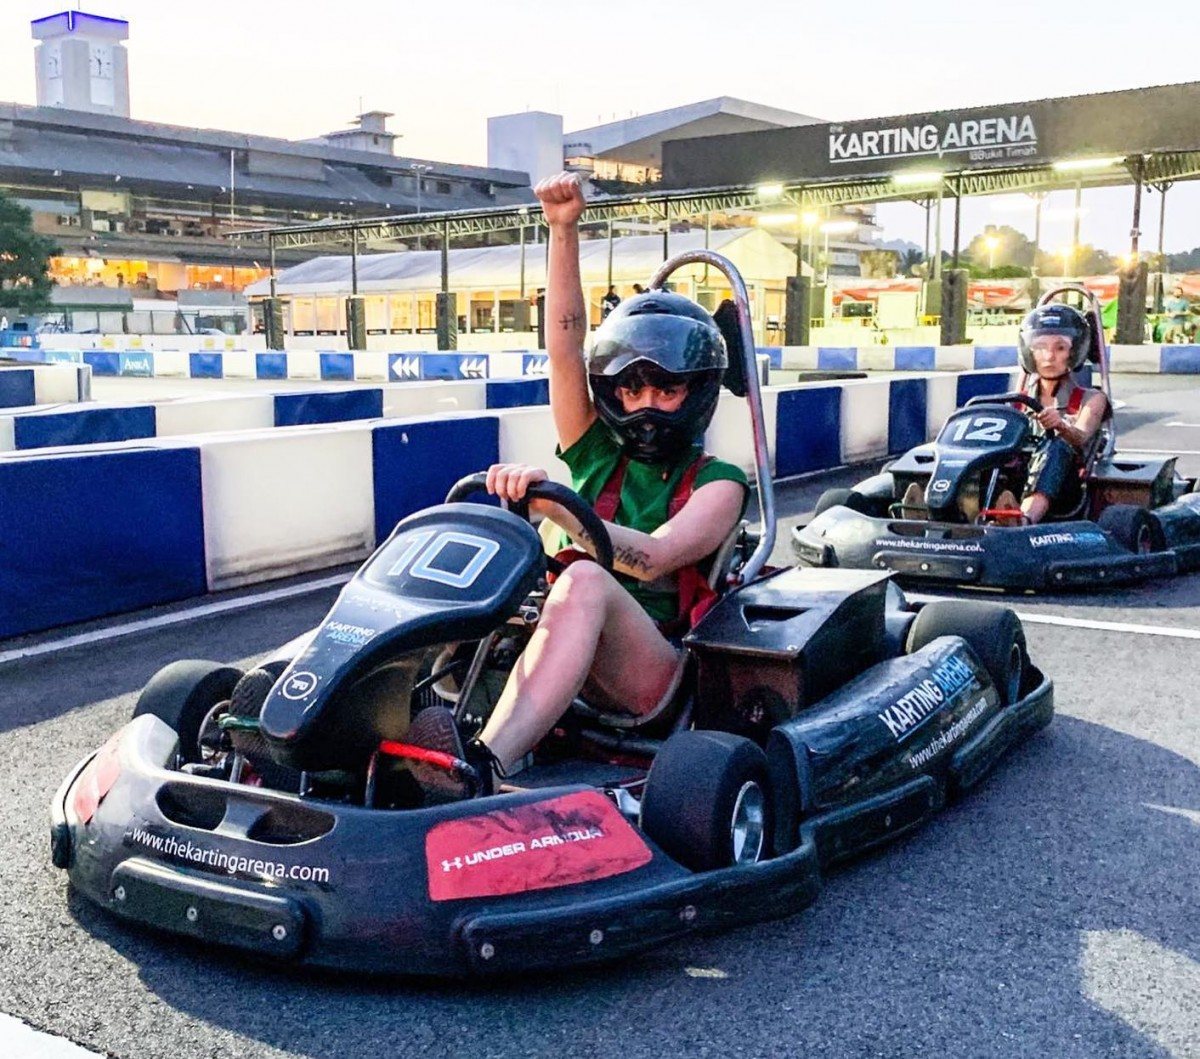 The Karting Arena has electric powered karts